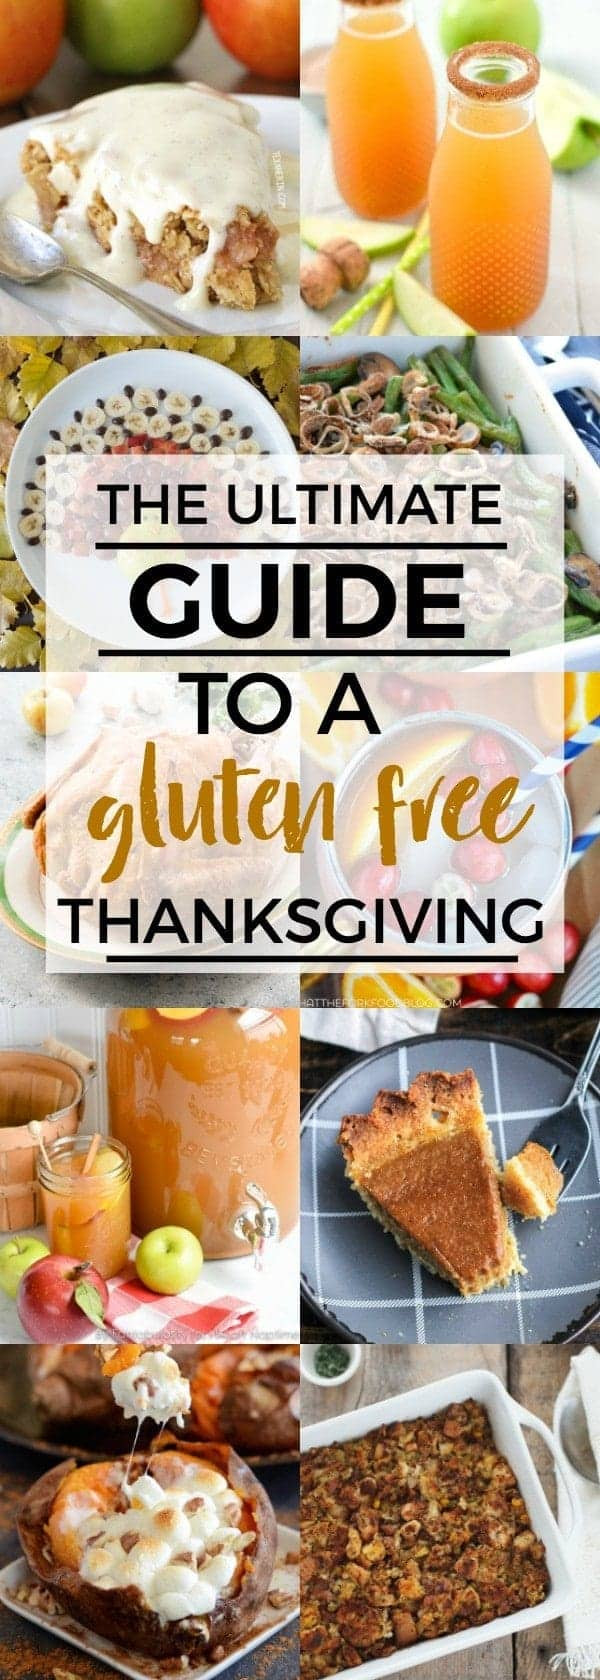 Gluten Free Thanksgiving Menu  An Easy Guide to a Gluten Free Thanksgiving Menu What